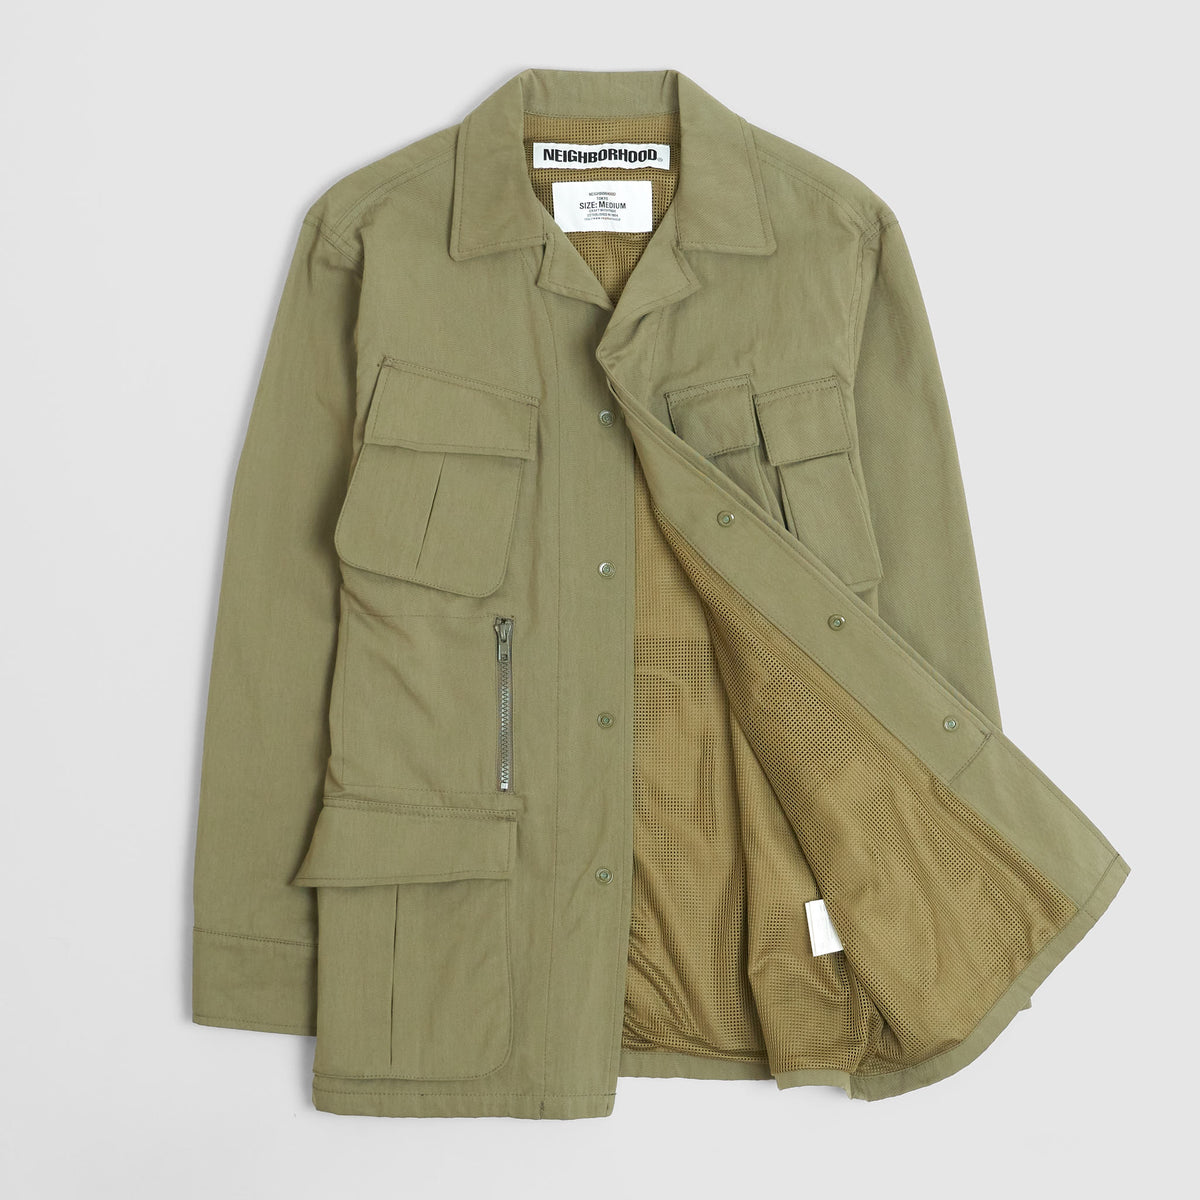 Neighborhood Fieldjacket